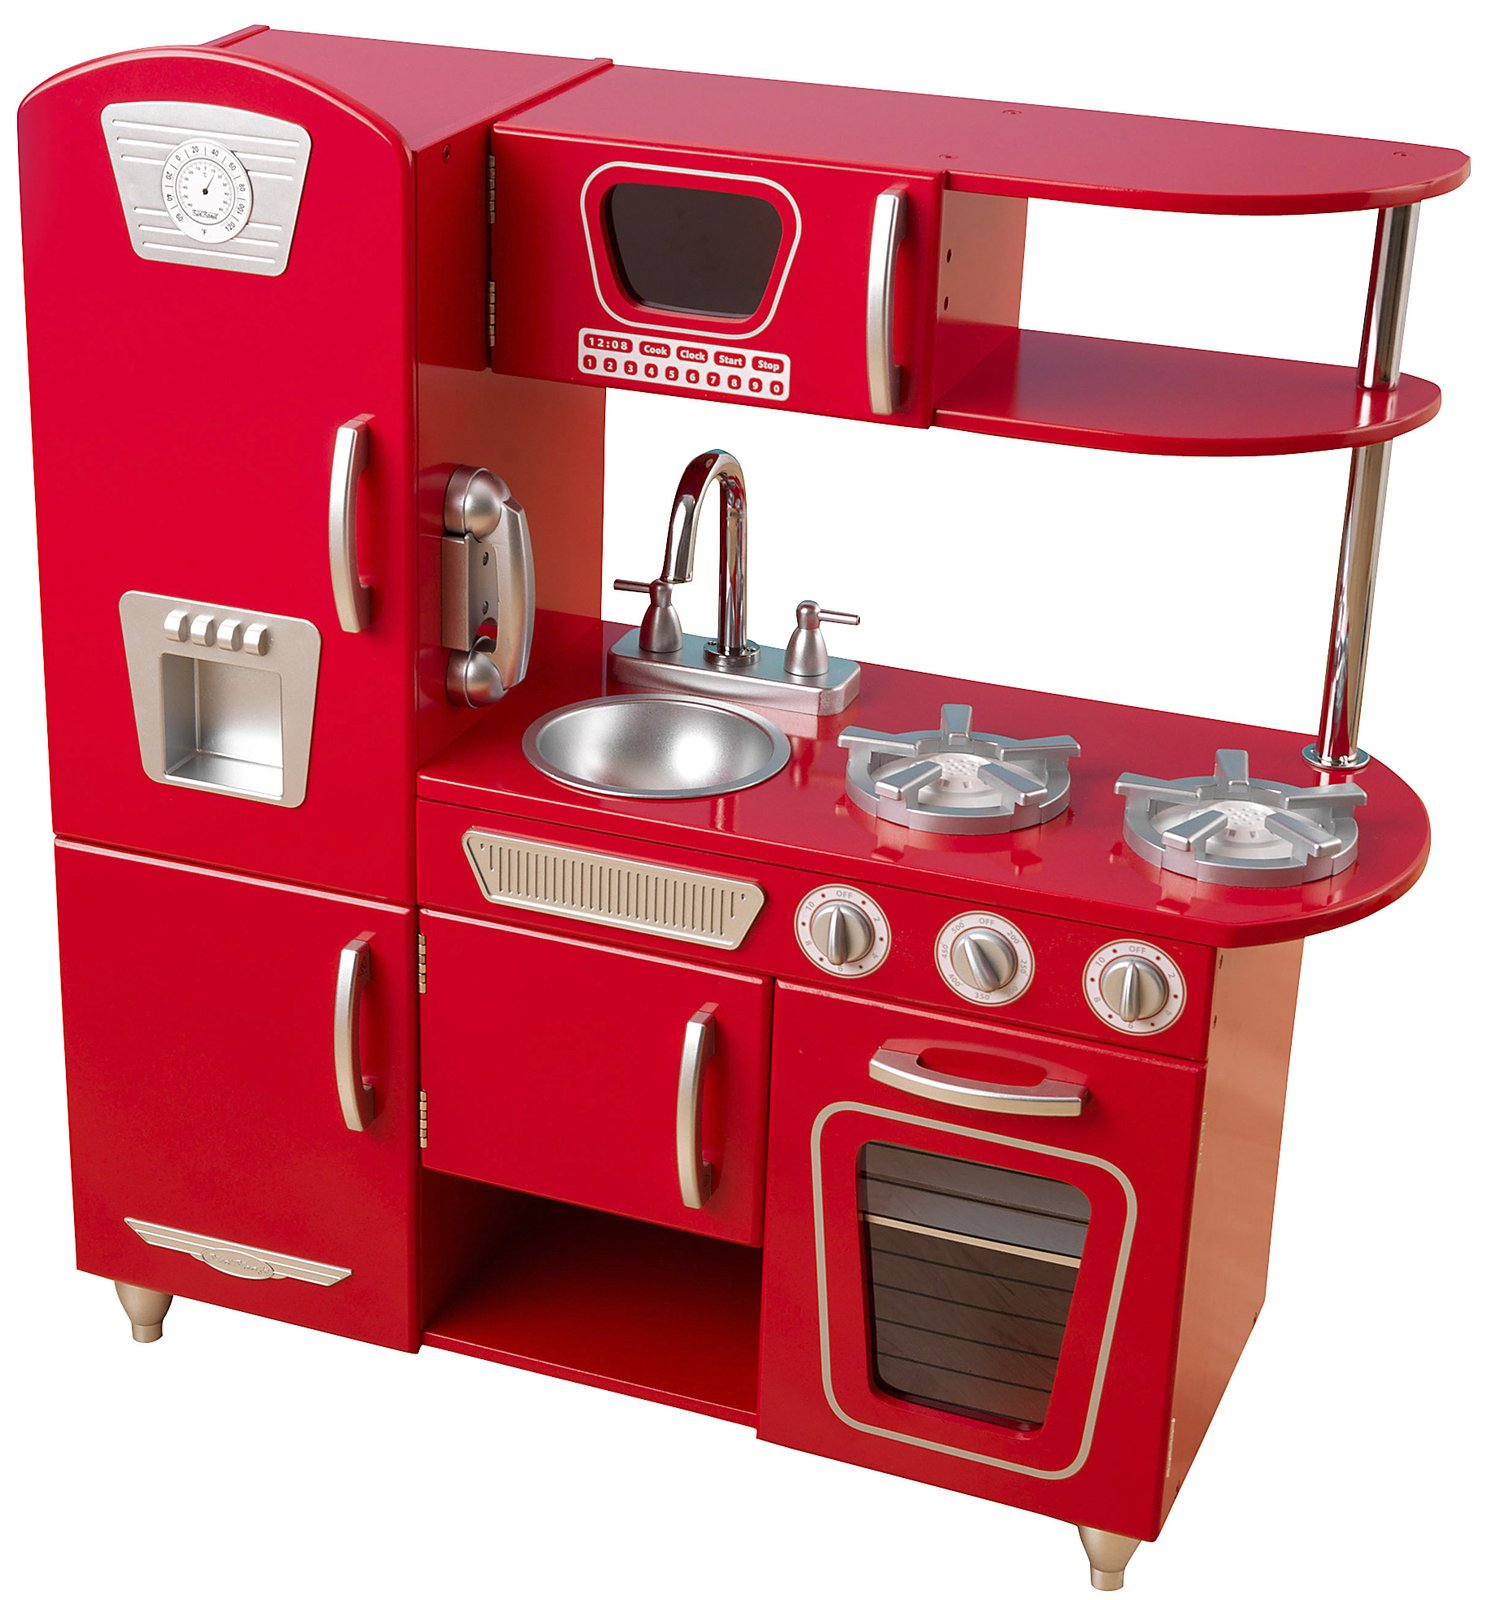 Melissa And Doug Wooden Appliance Set In Duktig Kitchen